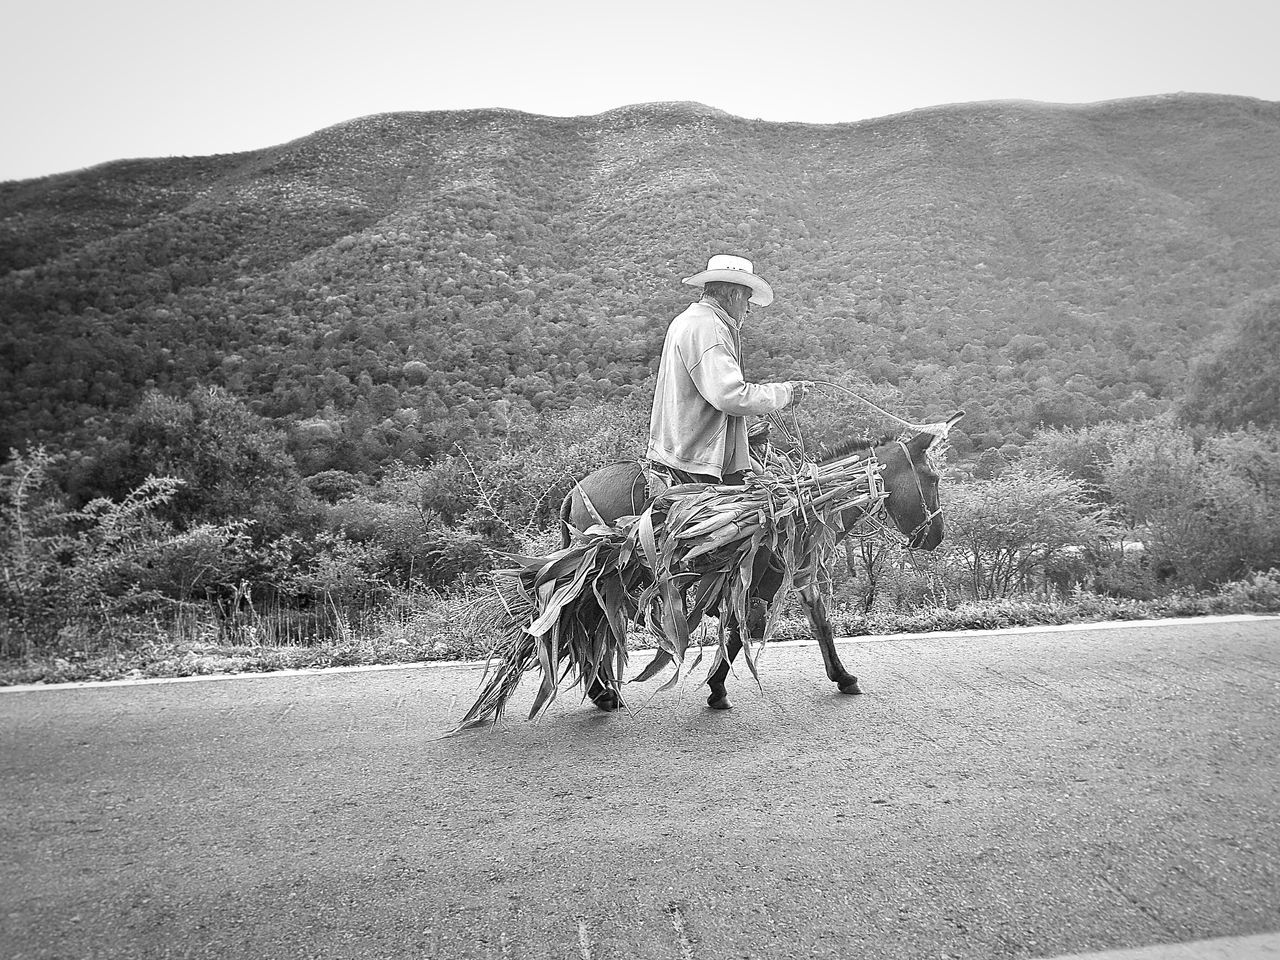 The Drive Domestic Animals Real People Outdoors Working Animal Rural Scene Occupation Nature Mexican Culture Mexicanphotographer Mexican Scene Black & White On The Road Street Photography Full Length Two People Domestic Animals Real People Livestock Outdoors Men Mammal Horse Only Men Working Animal